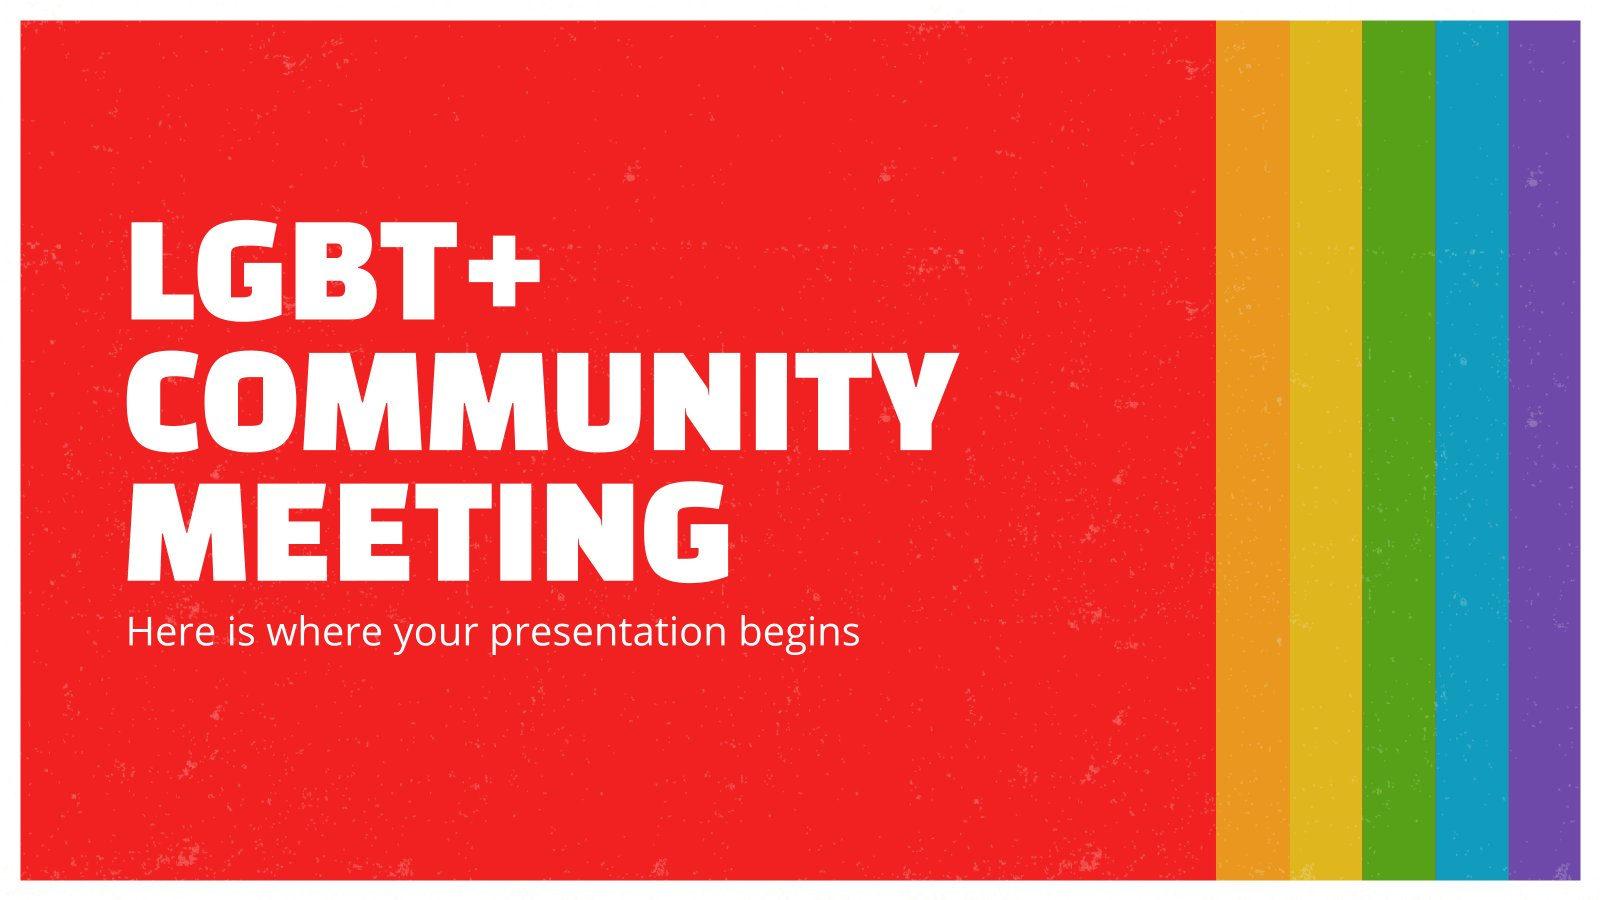 LGBT+ Community Meeting presentation template